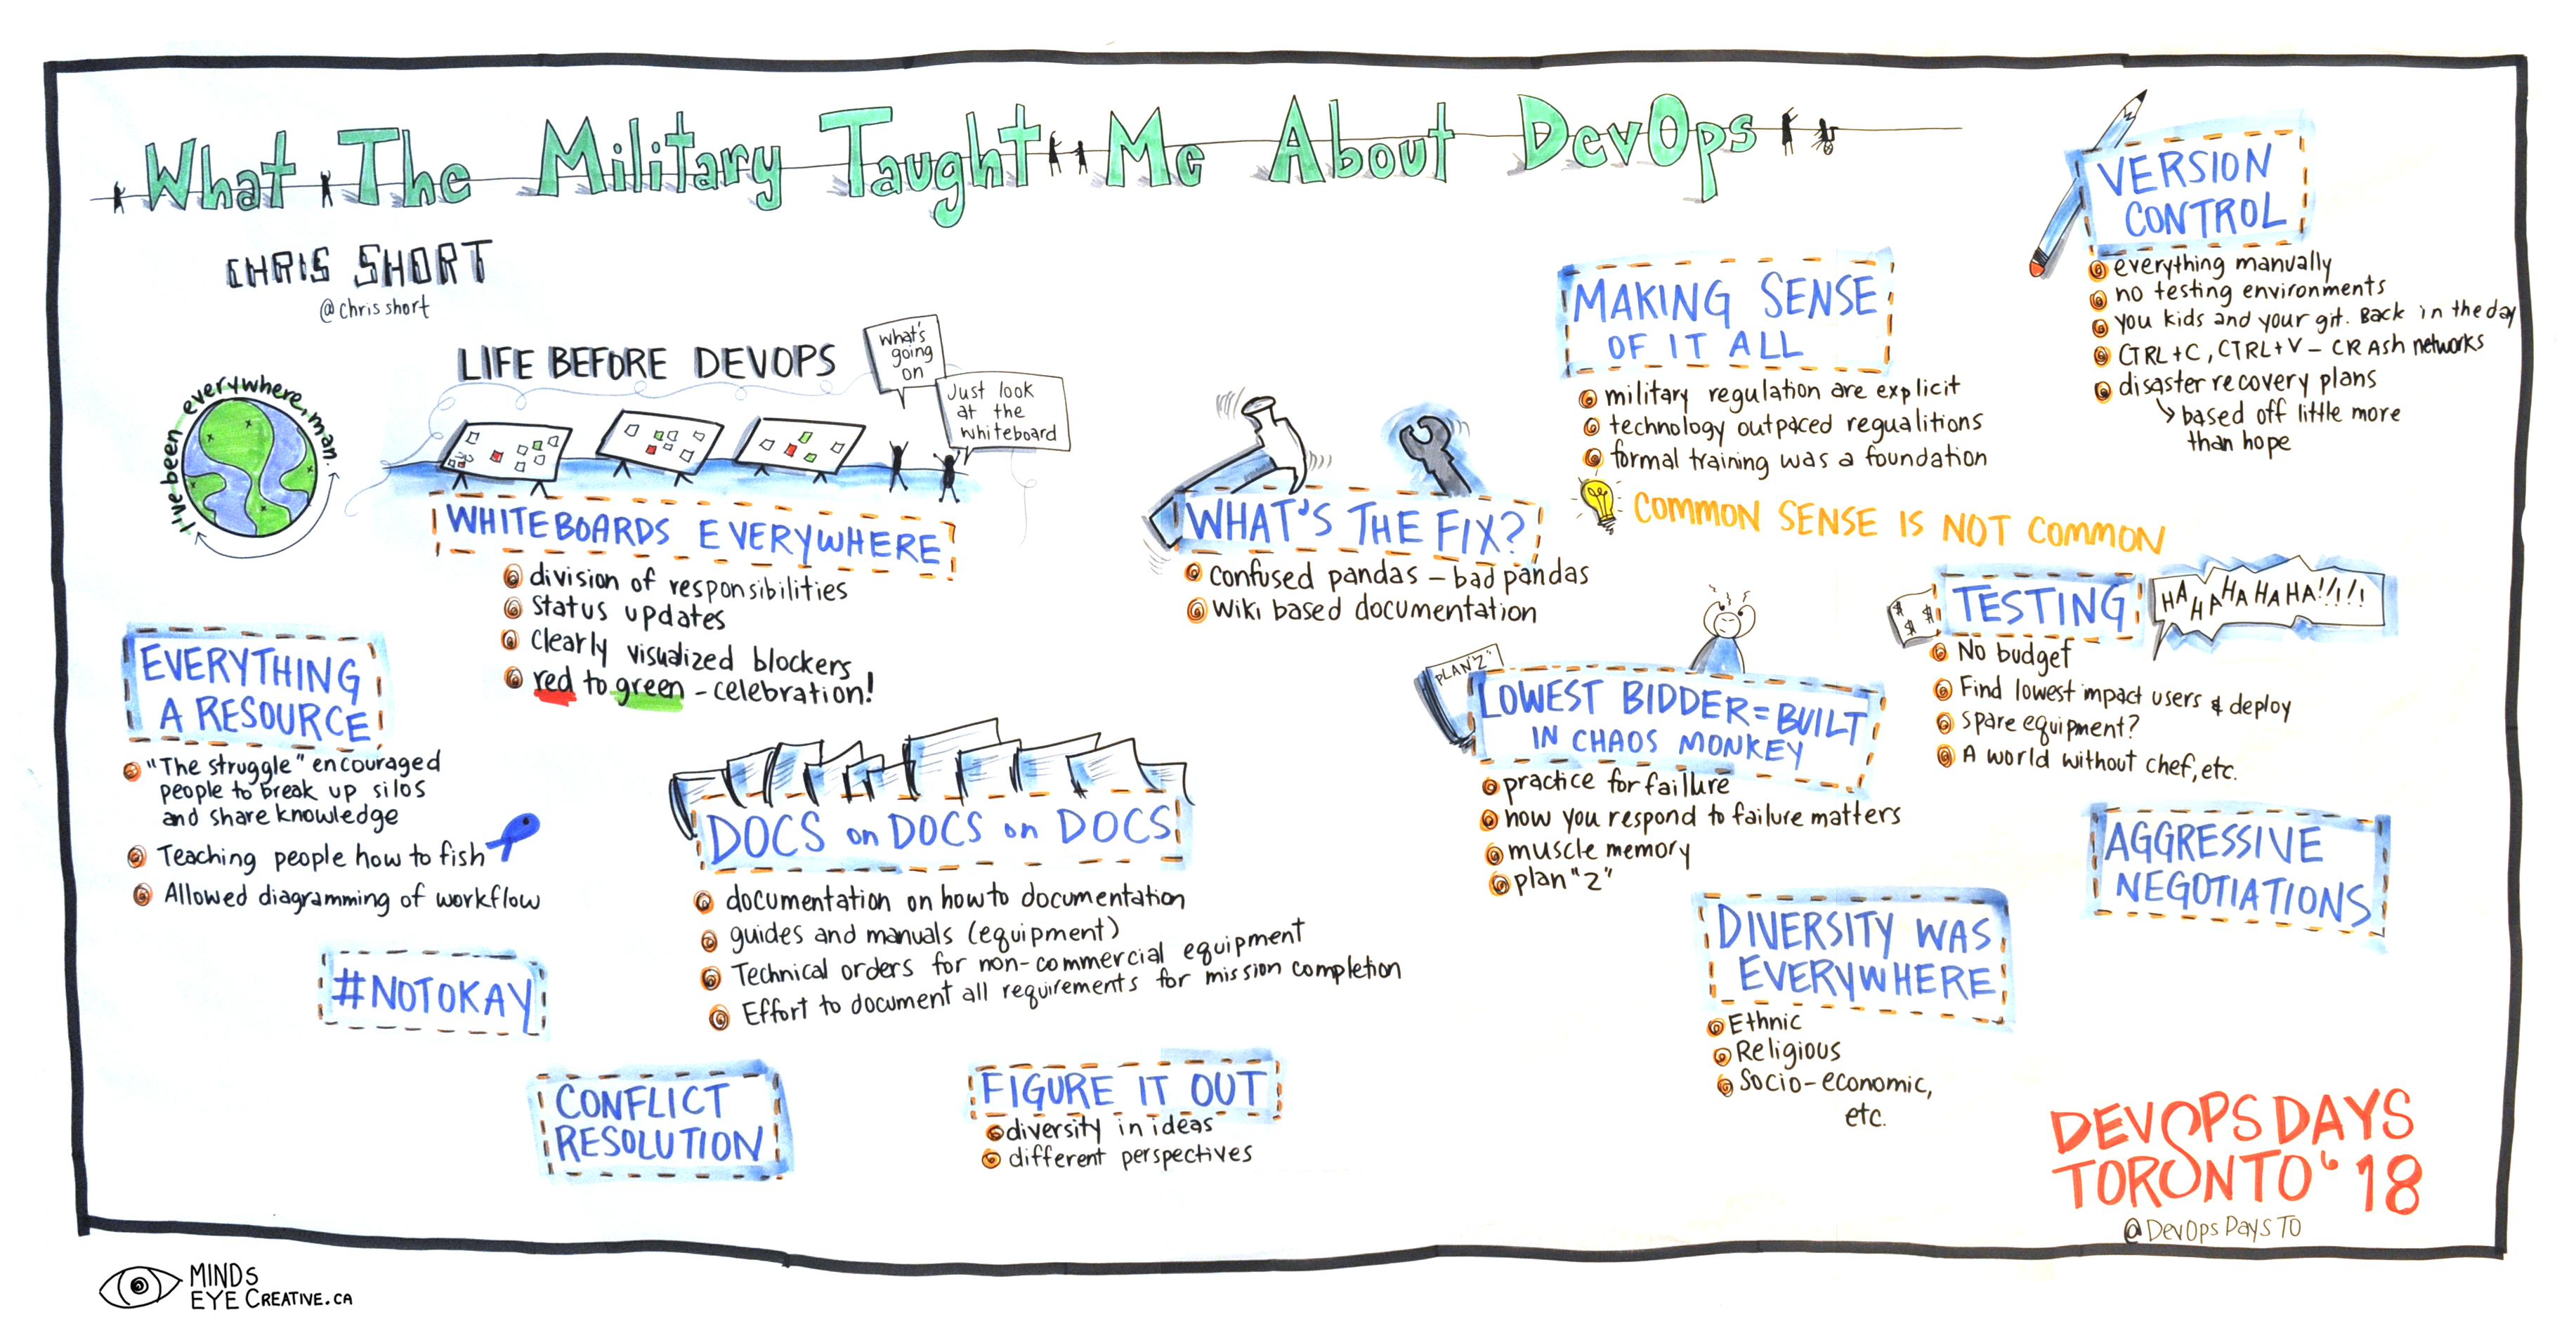 What the Military Taught Me about DevOps - devopsdays